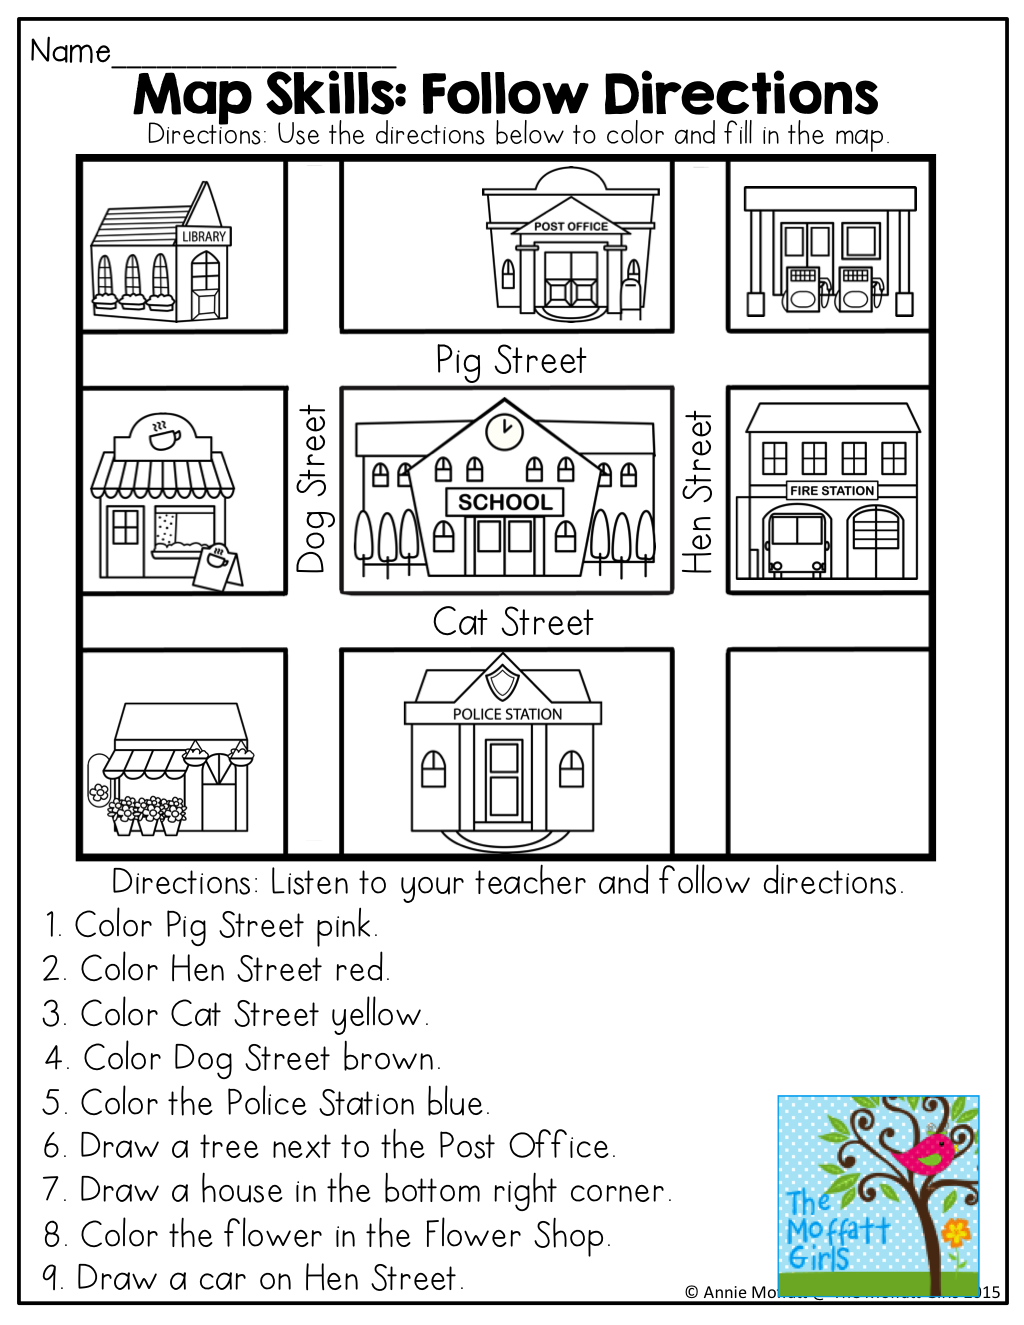 Workbooks worksheets for grade 4 social studies : April NO PREP Packet (Kindergarten) | Map skills, Social studies ...